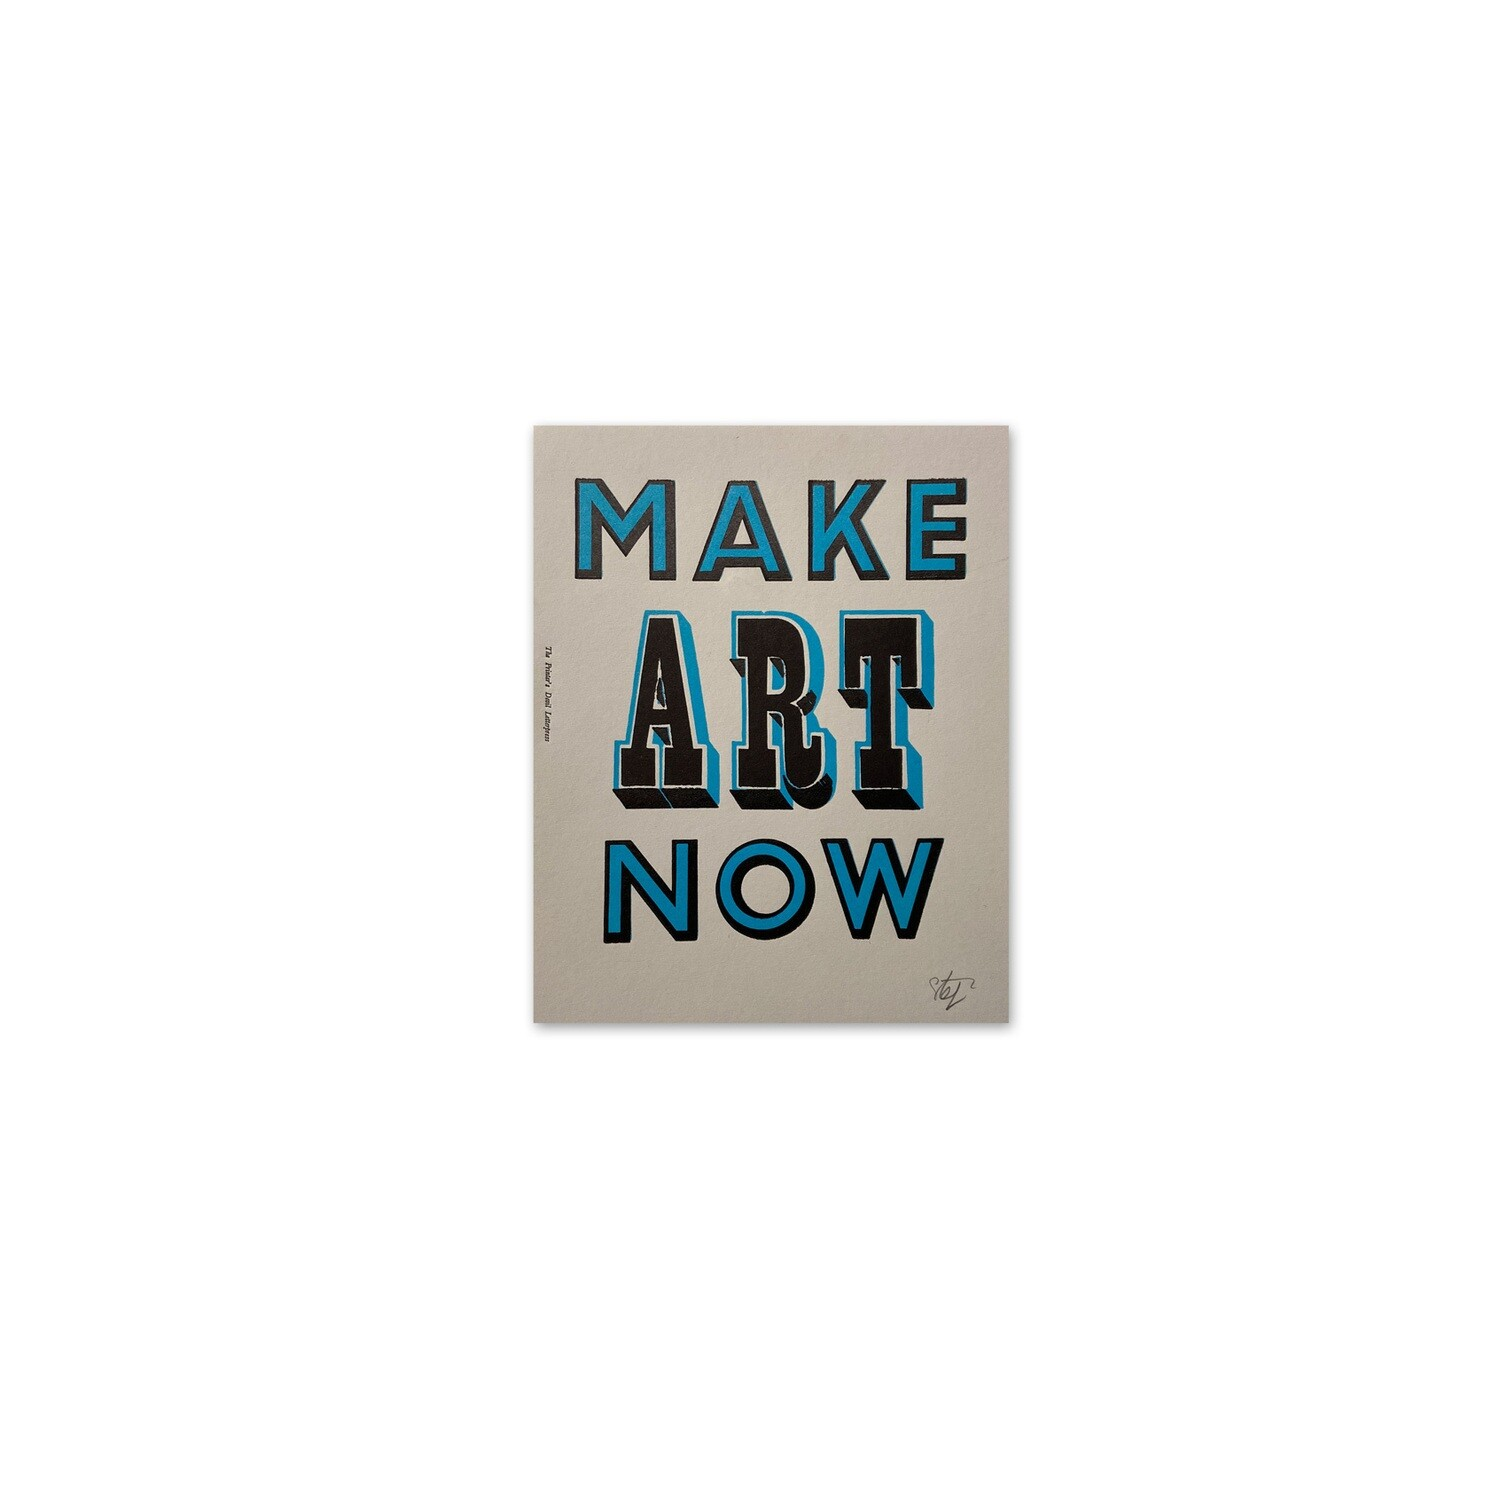 Make ART Now (Blue)